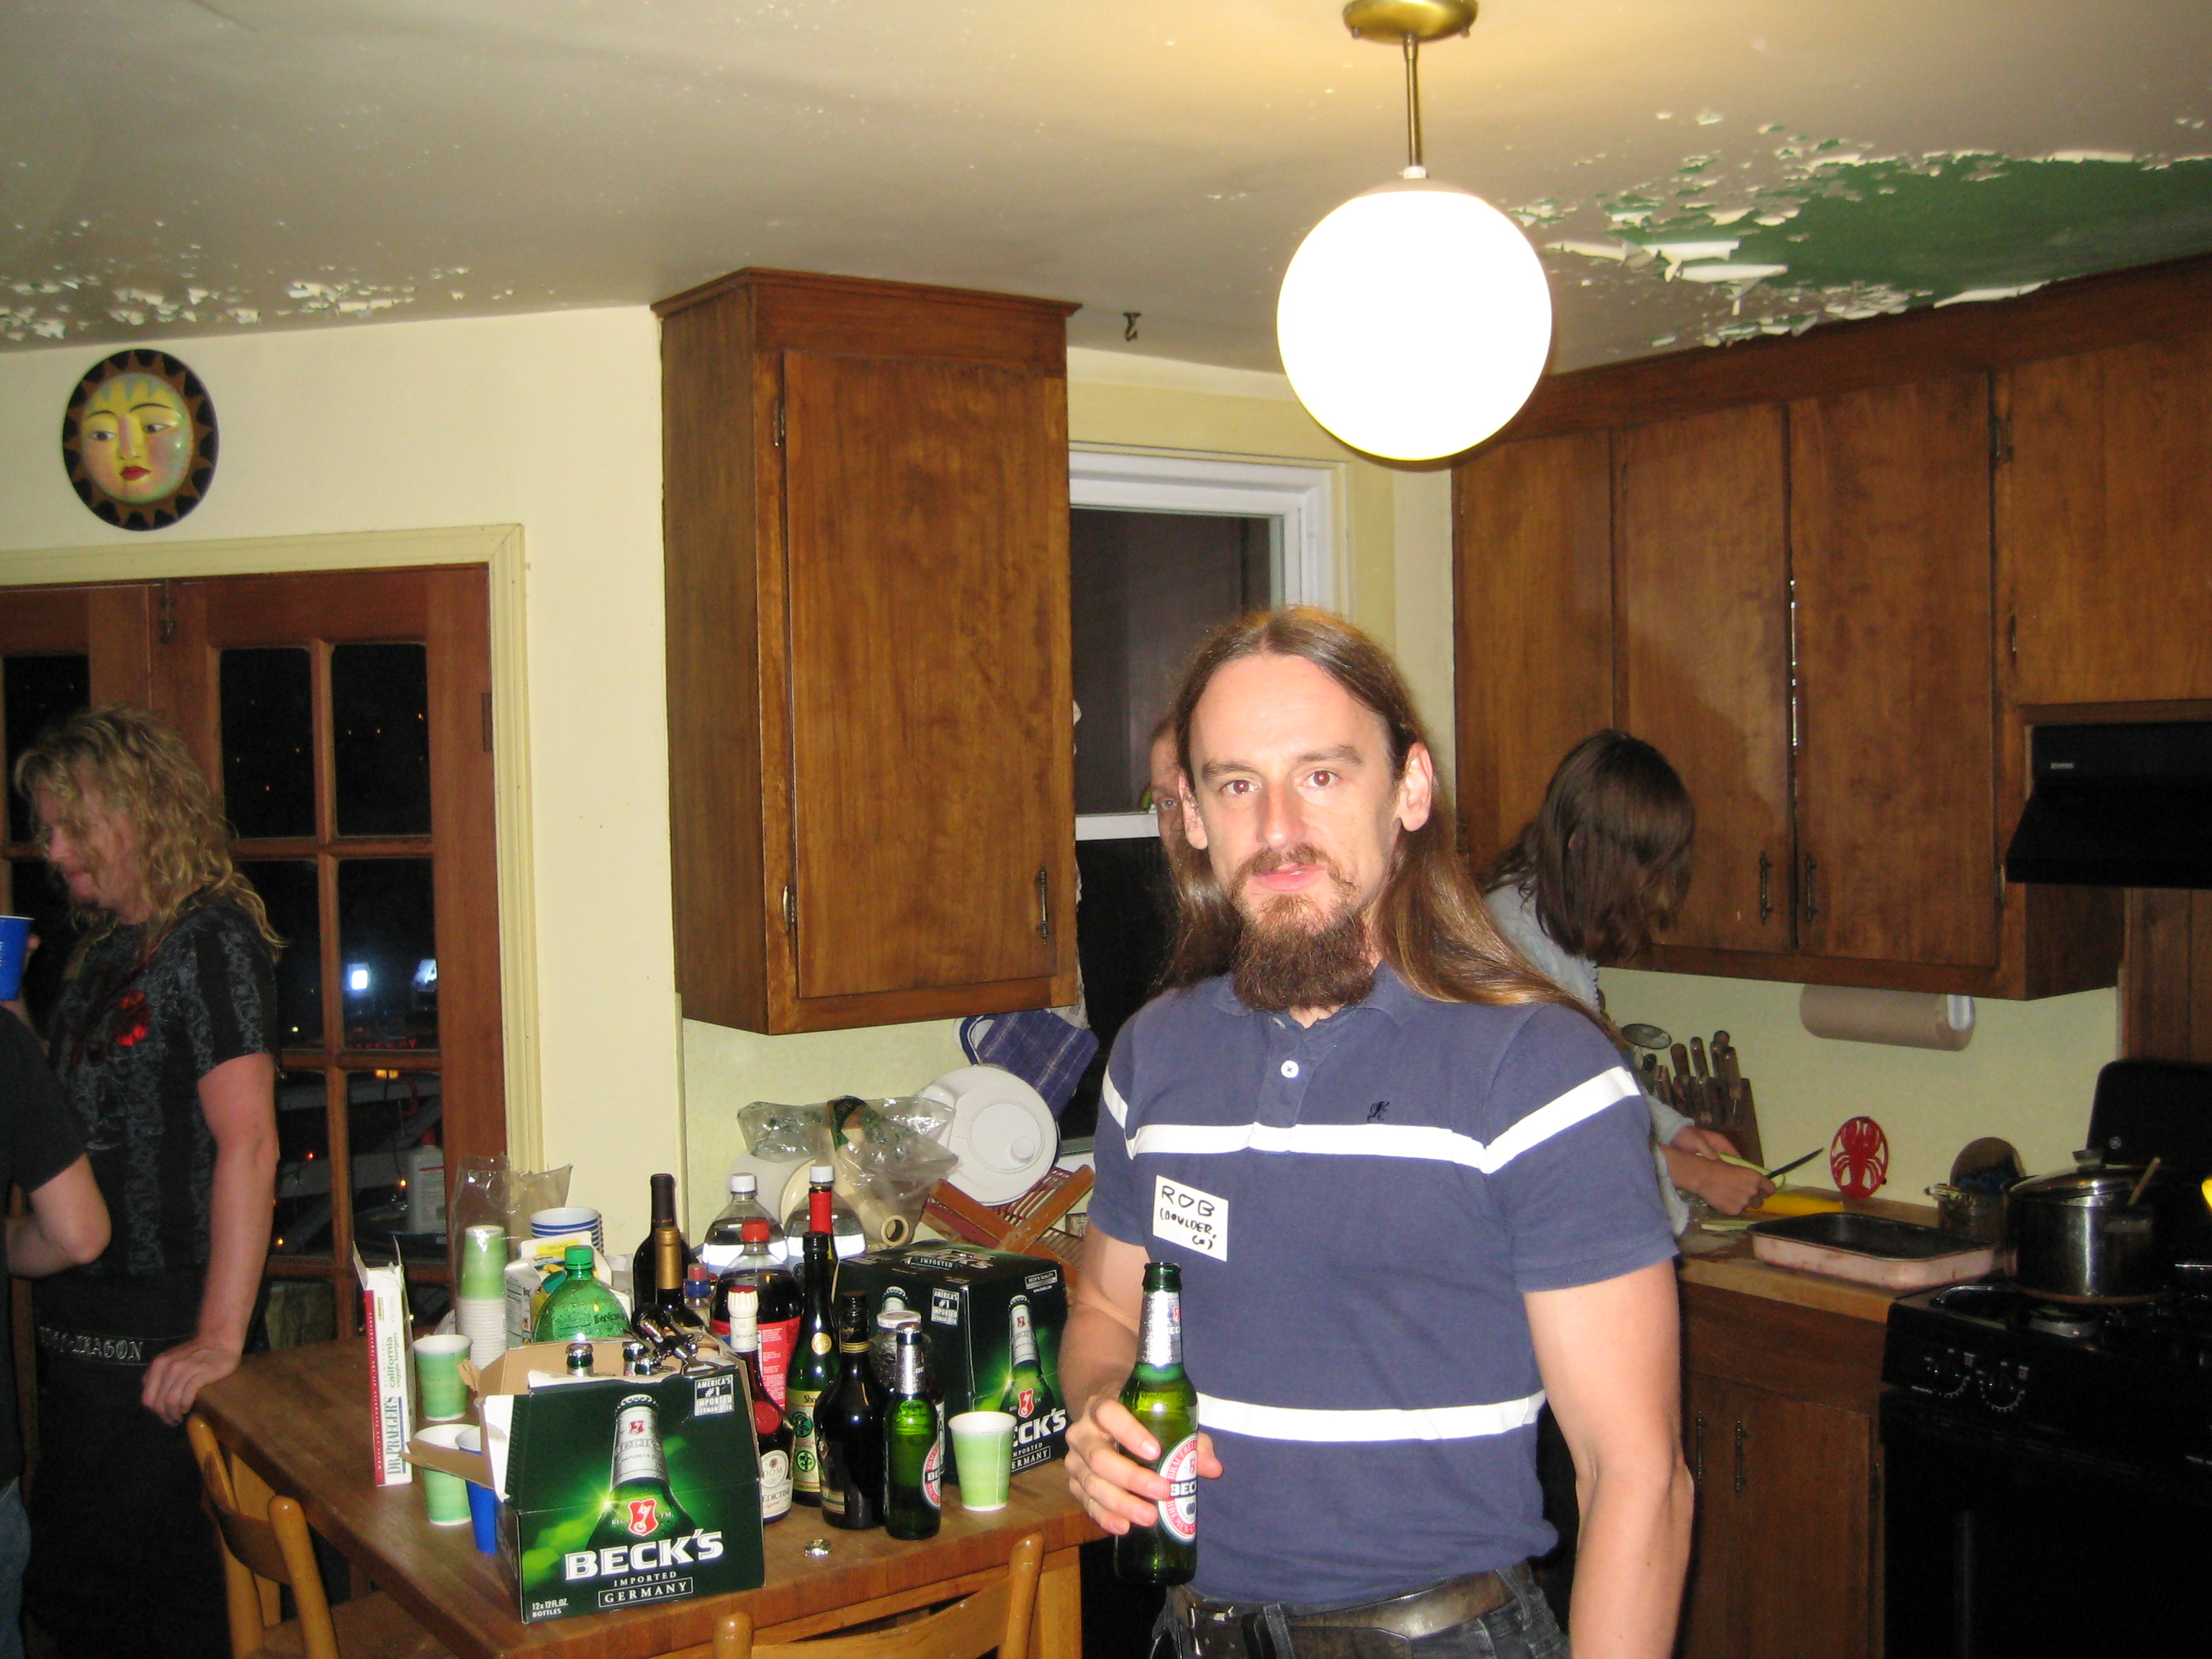 Rob Drinking a Beer in the Kitchen